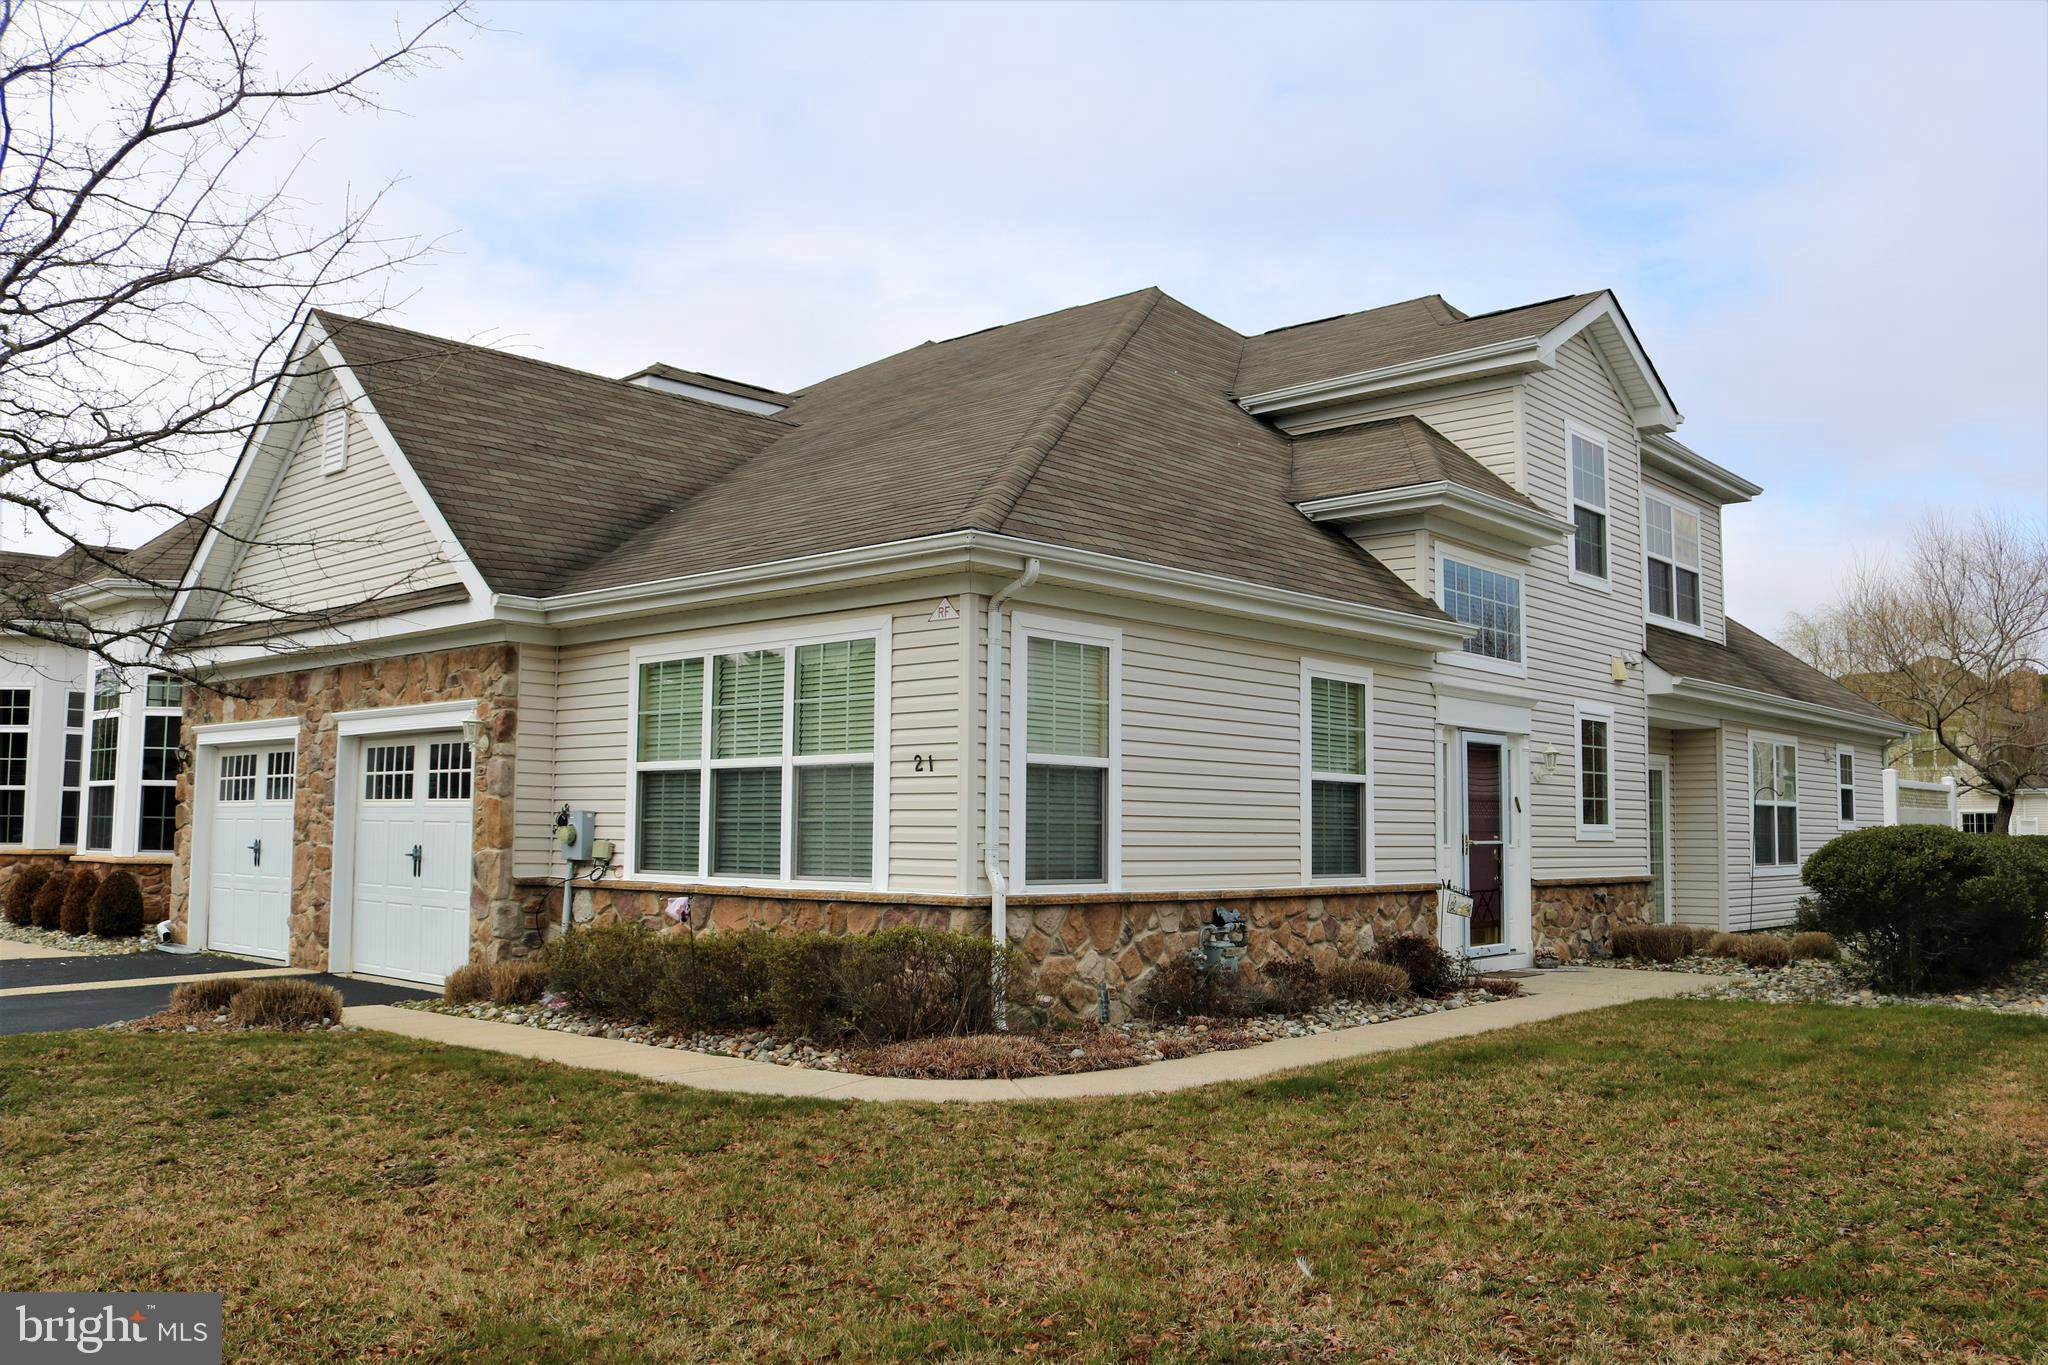 21 ABLES RUN DRIVE, ABSECON, NJ 08201